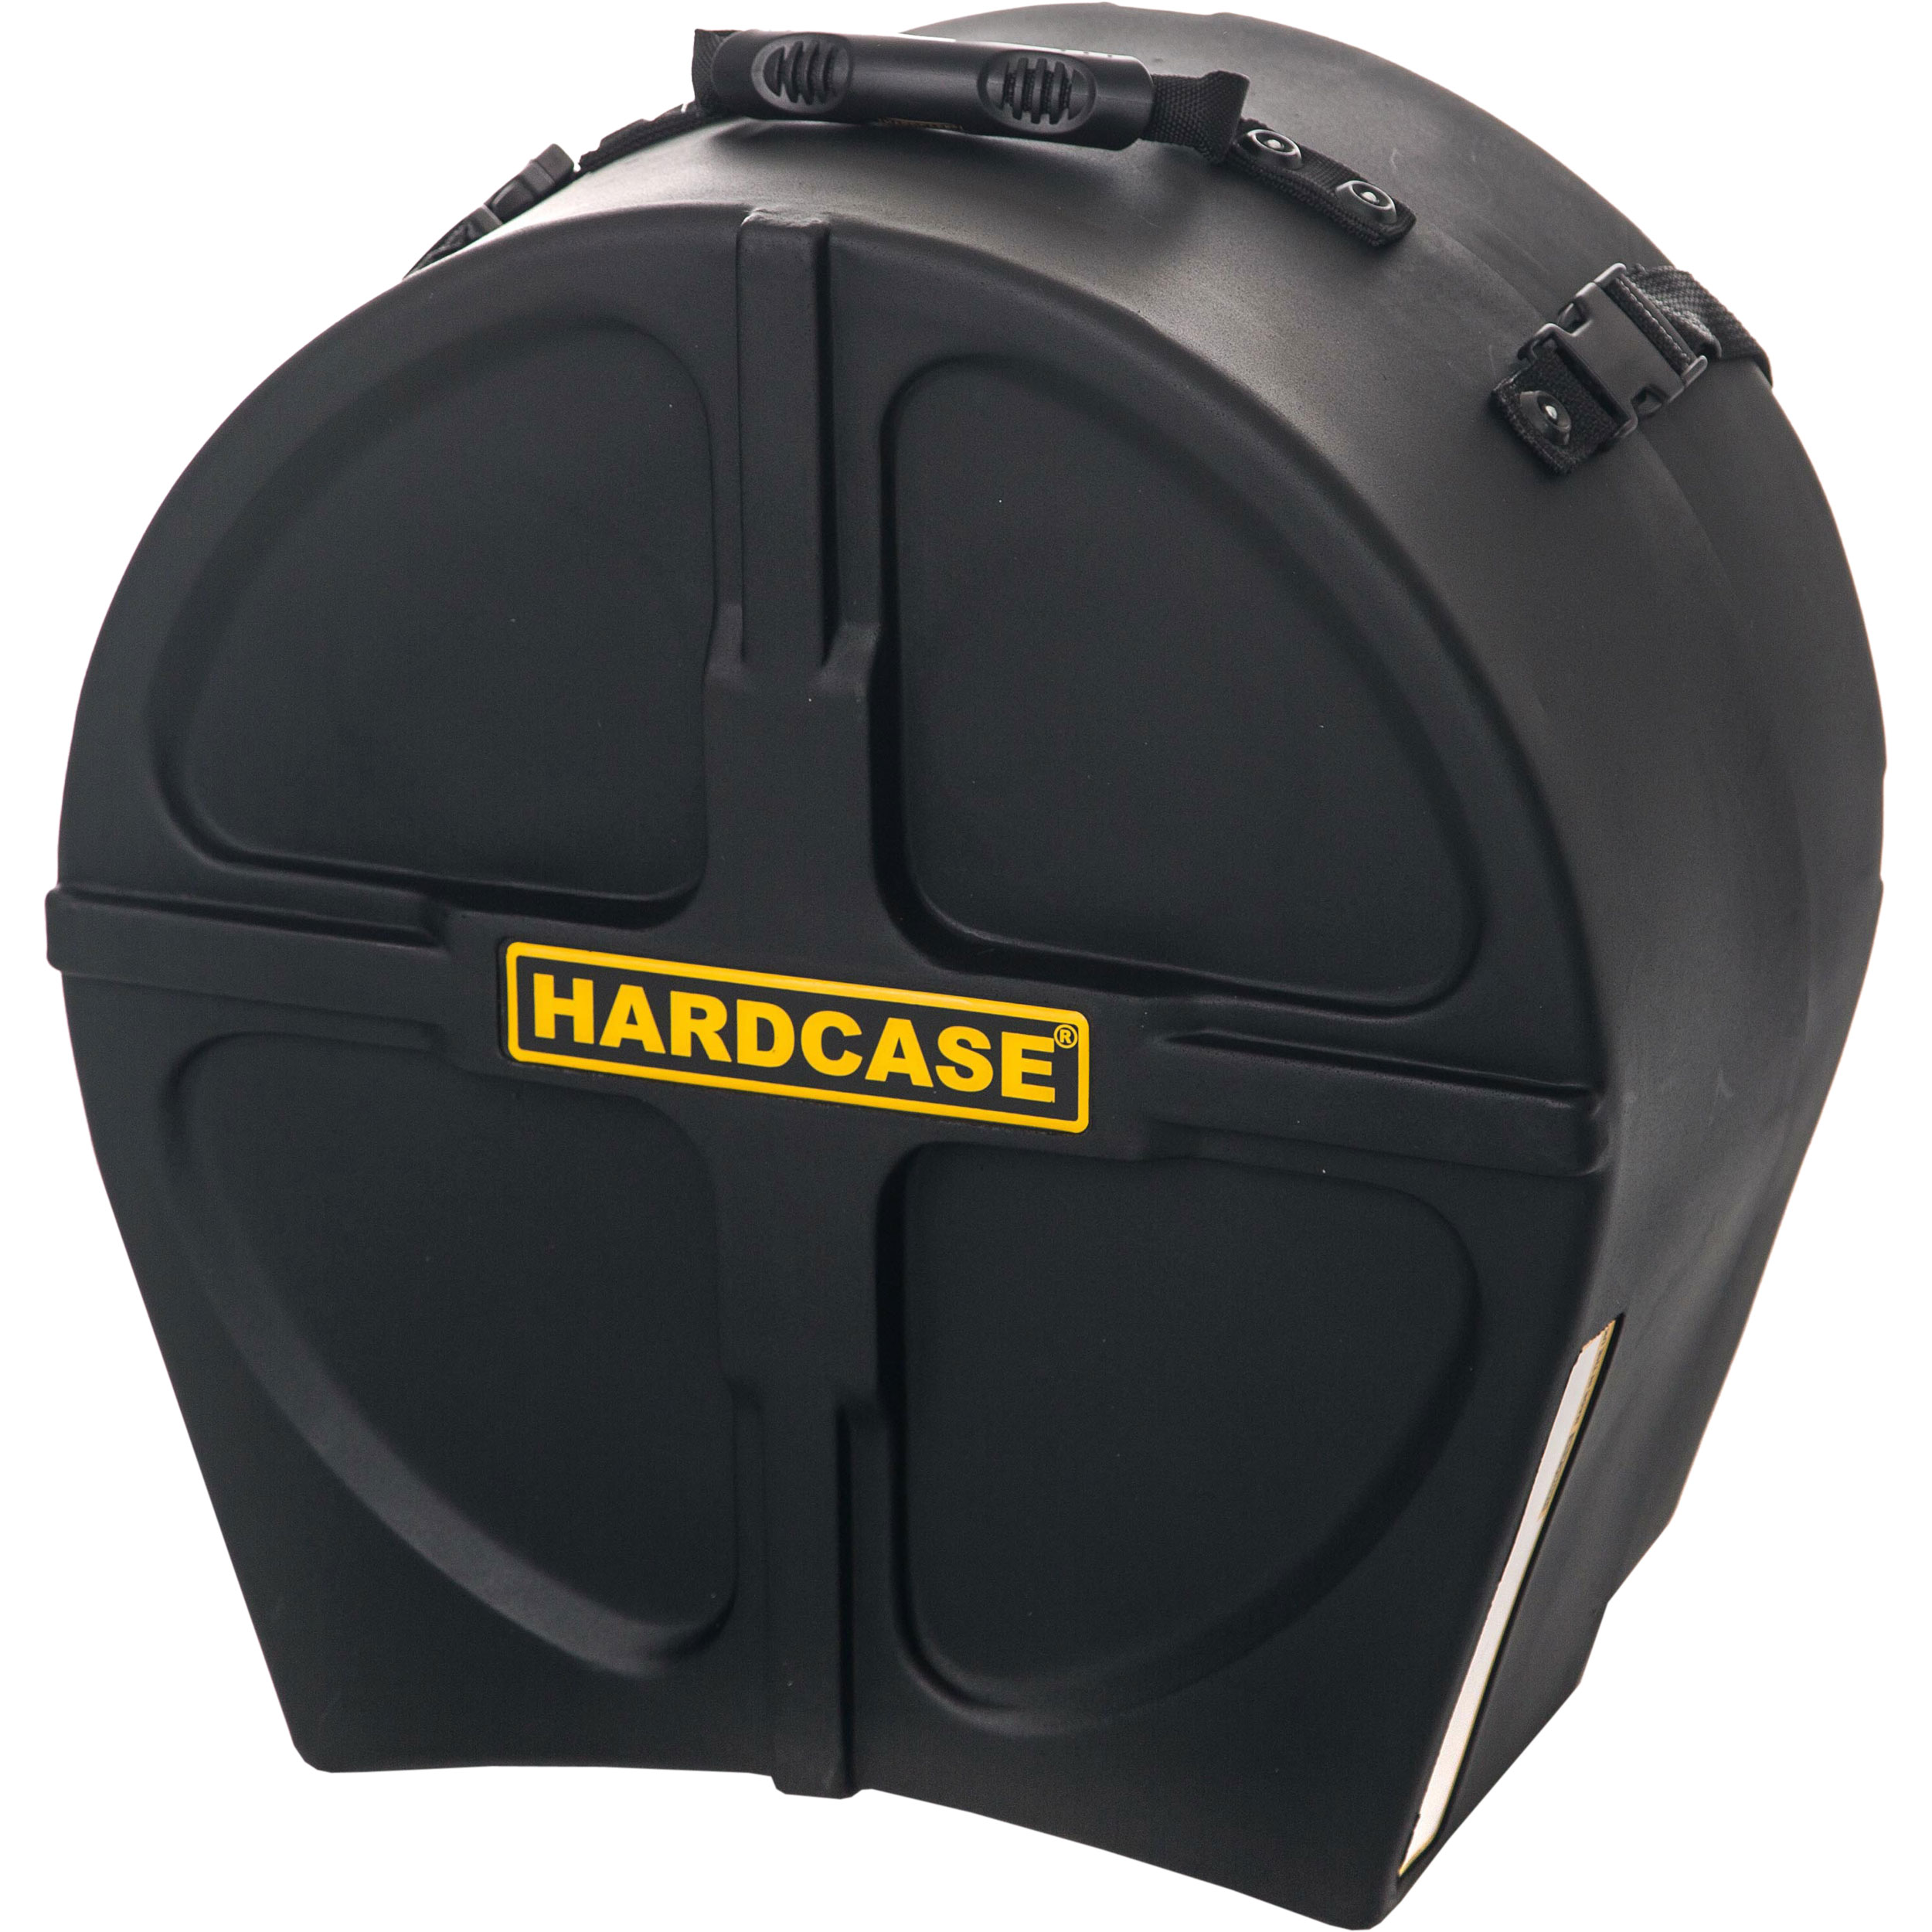 "Hardcase 14"" (Diameter) x 14"" (Deep) Floor Tom Case"